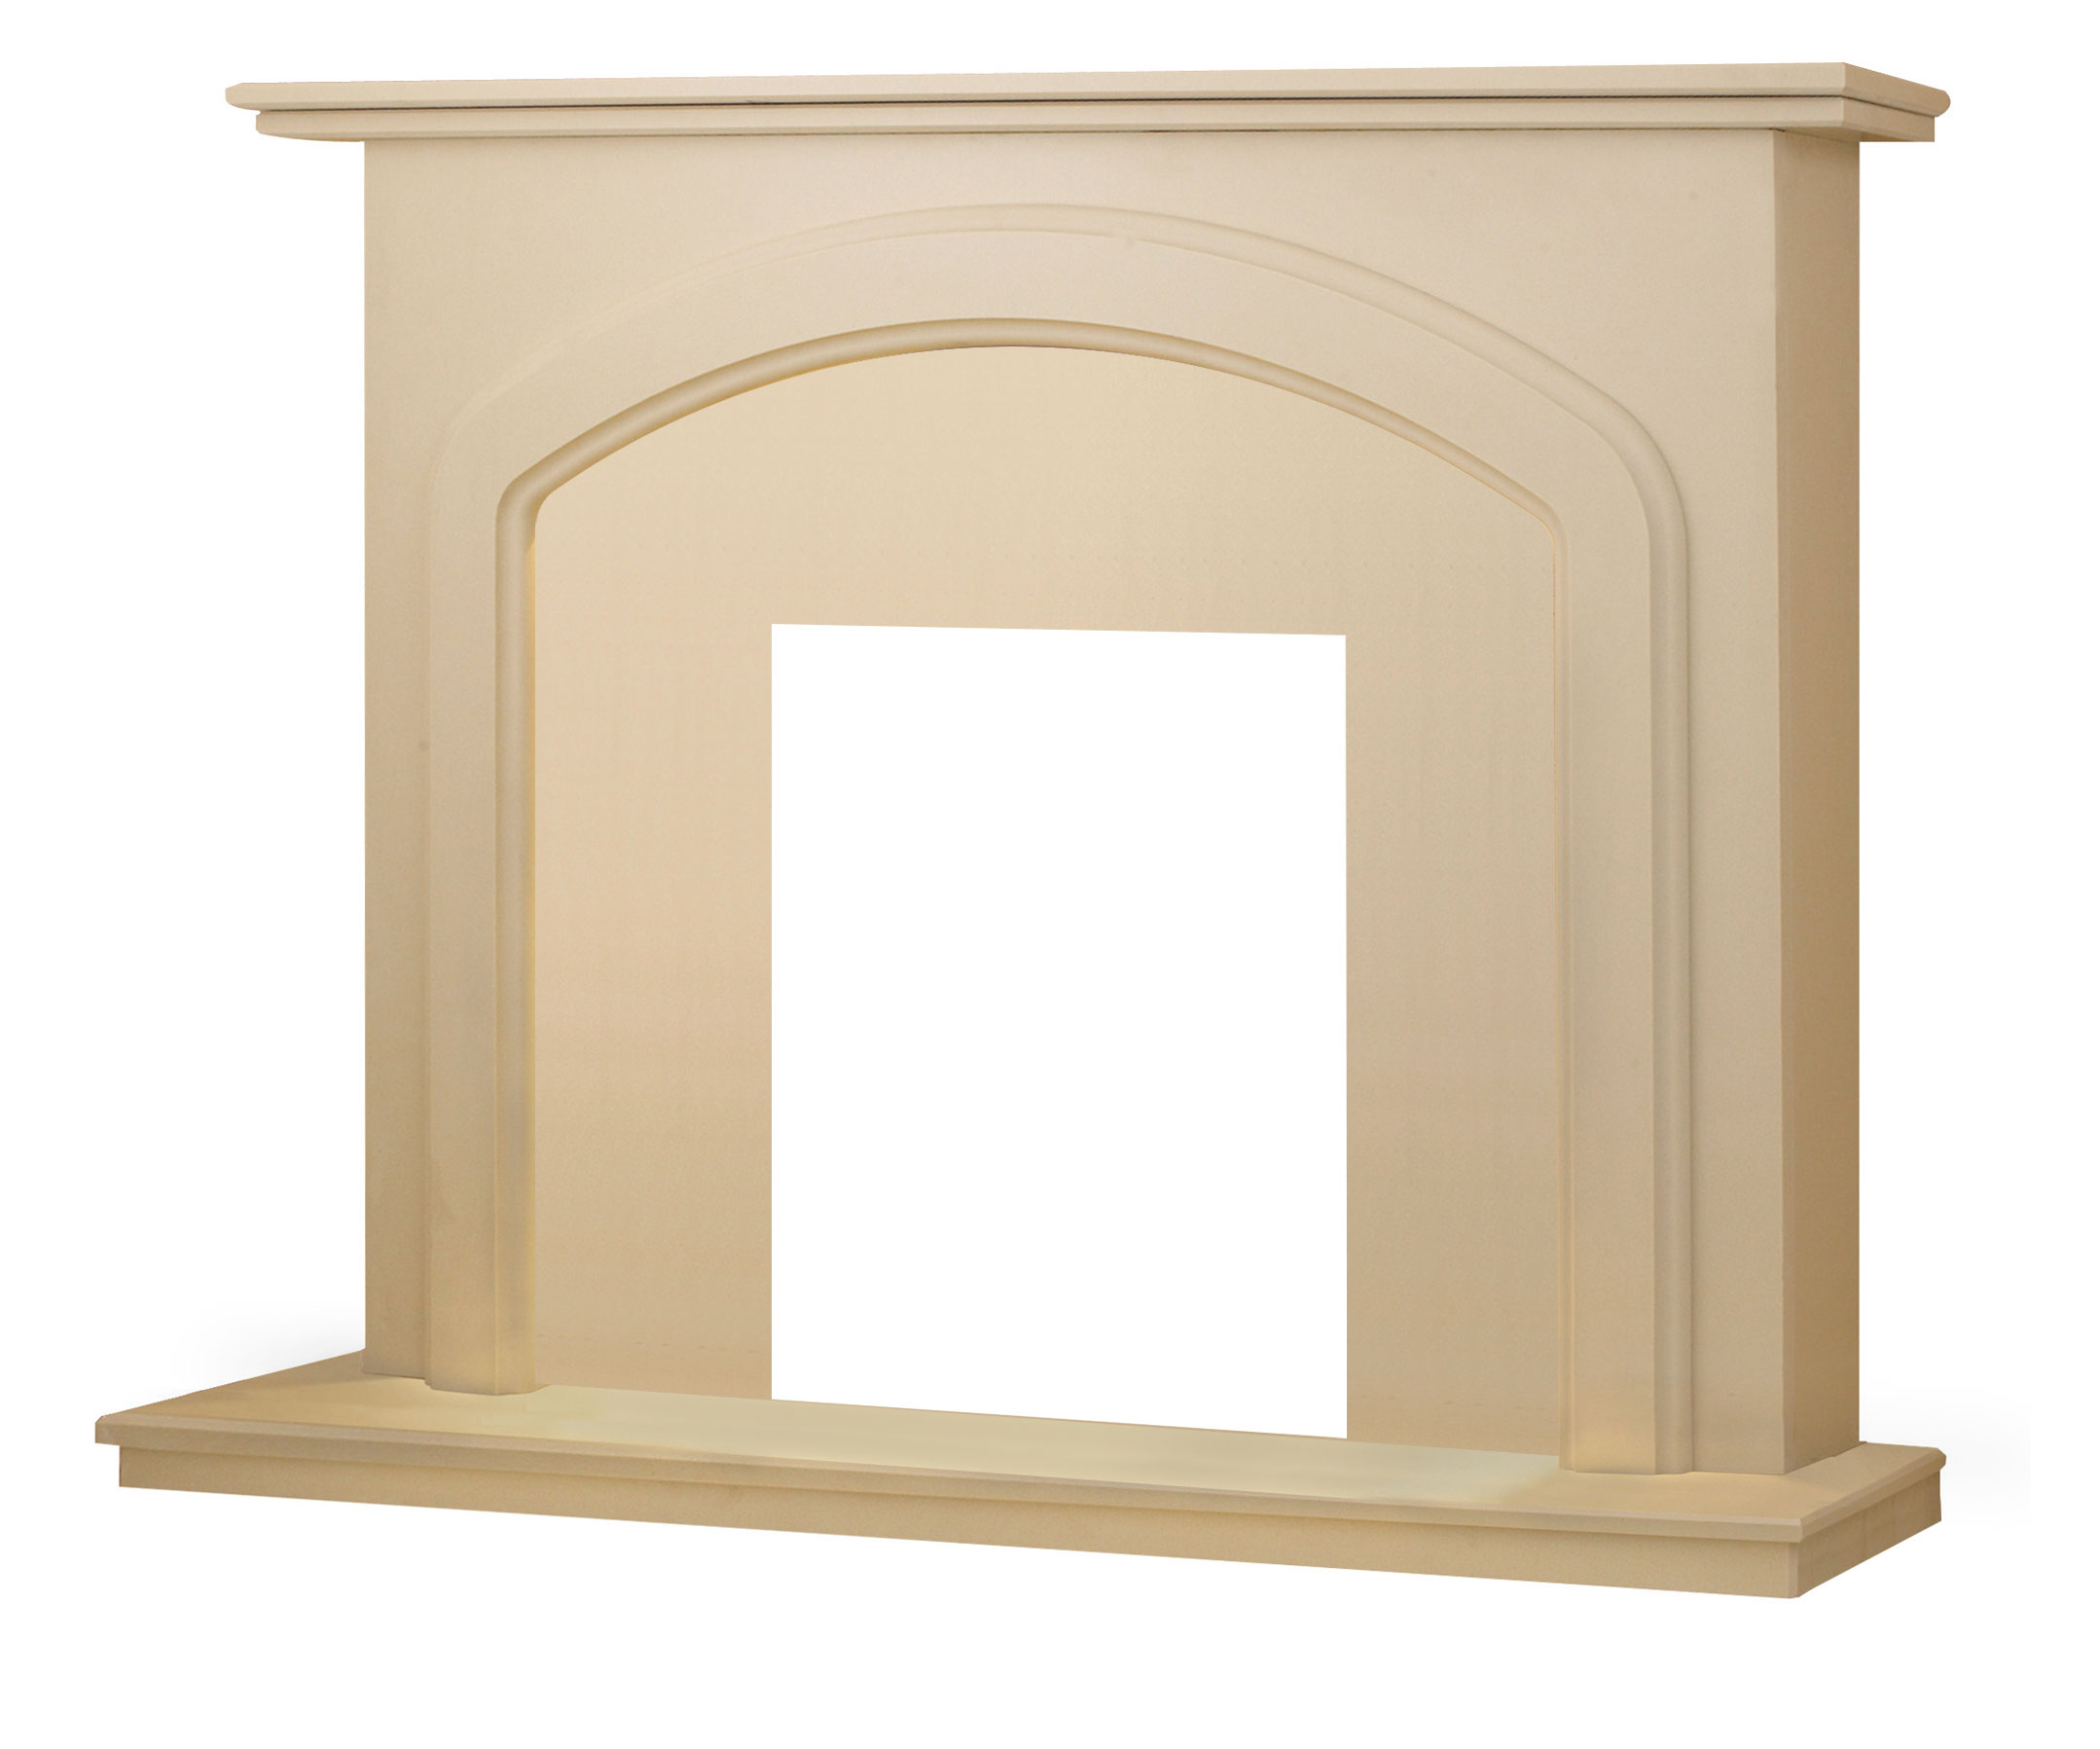 Customise any of our Marble Fireplaces